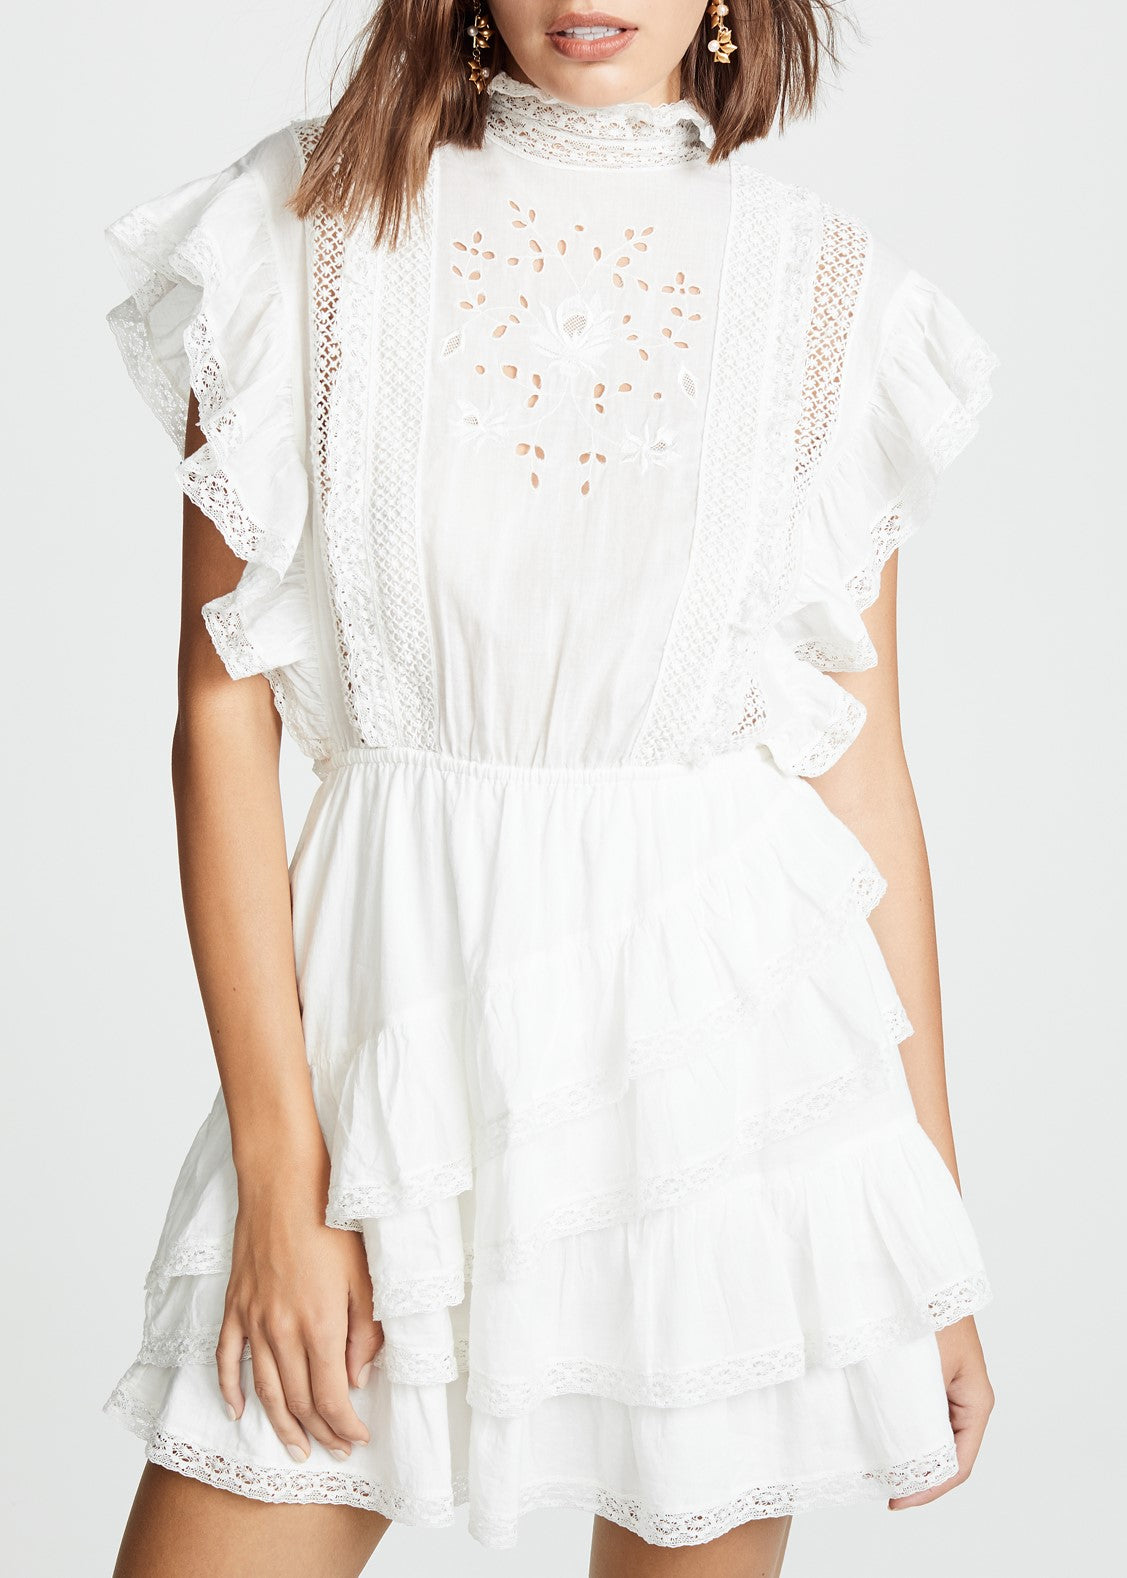 Ulla Johnson Holly dress in white